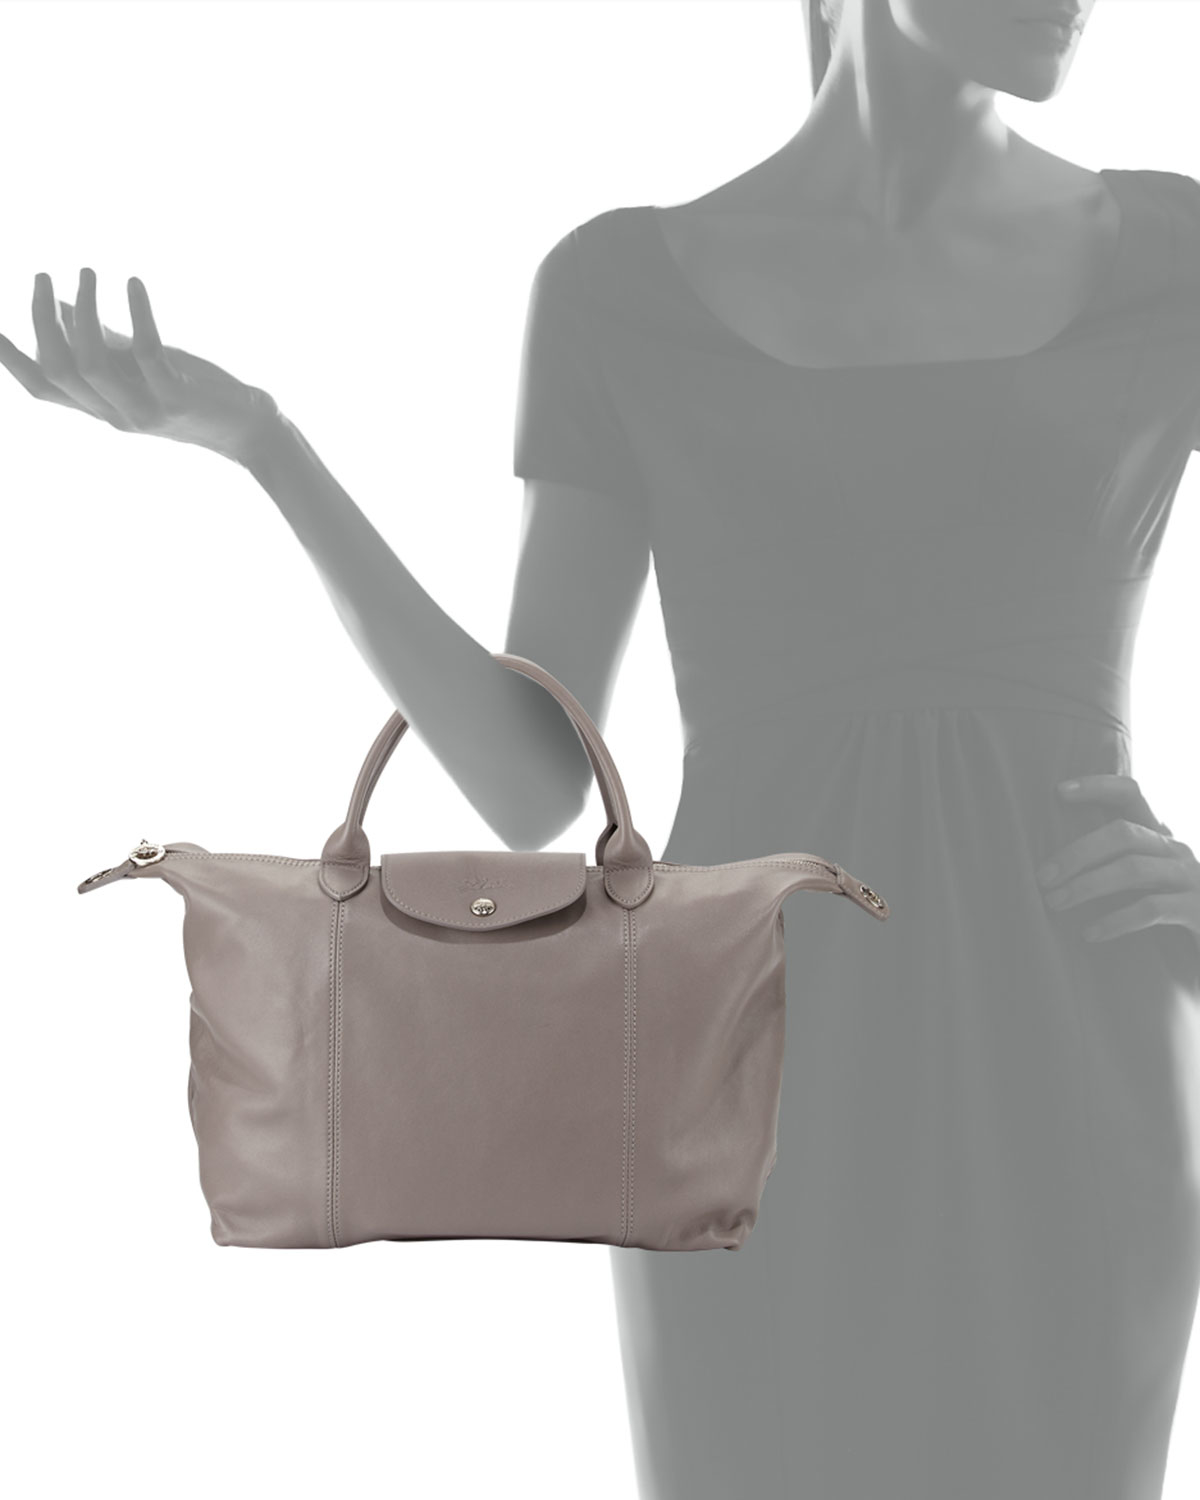 Lyst - Longchamp Le Pliage Cuir Tote Bag With Strap in Gray ee718822c0388